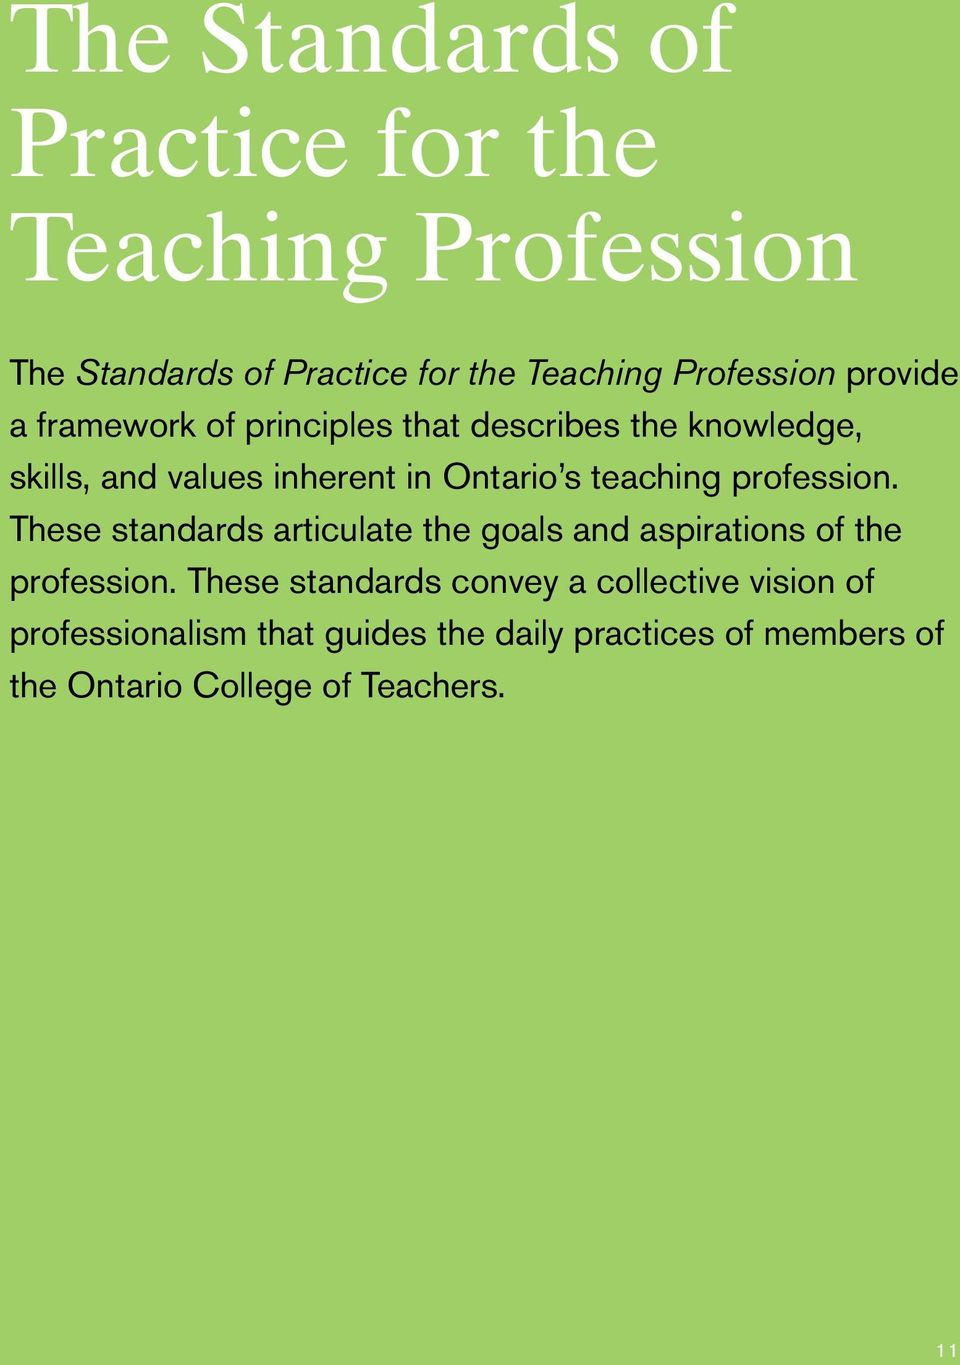 teaching profession. These standards articulate the goals and aspirations of the profession.